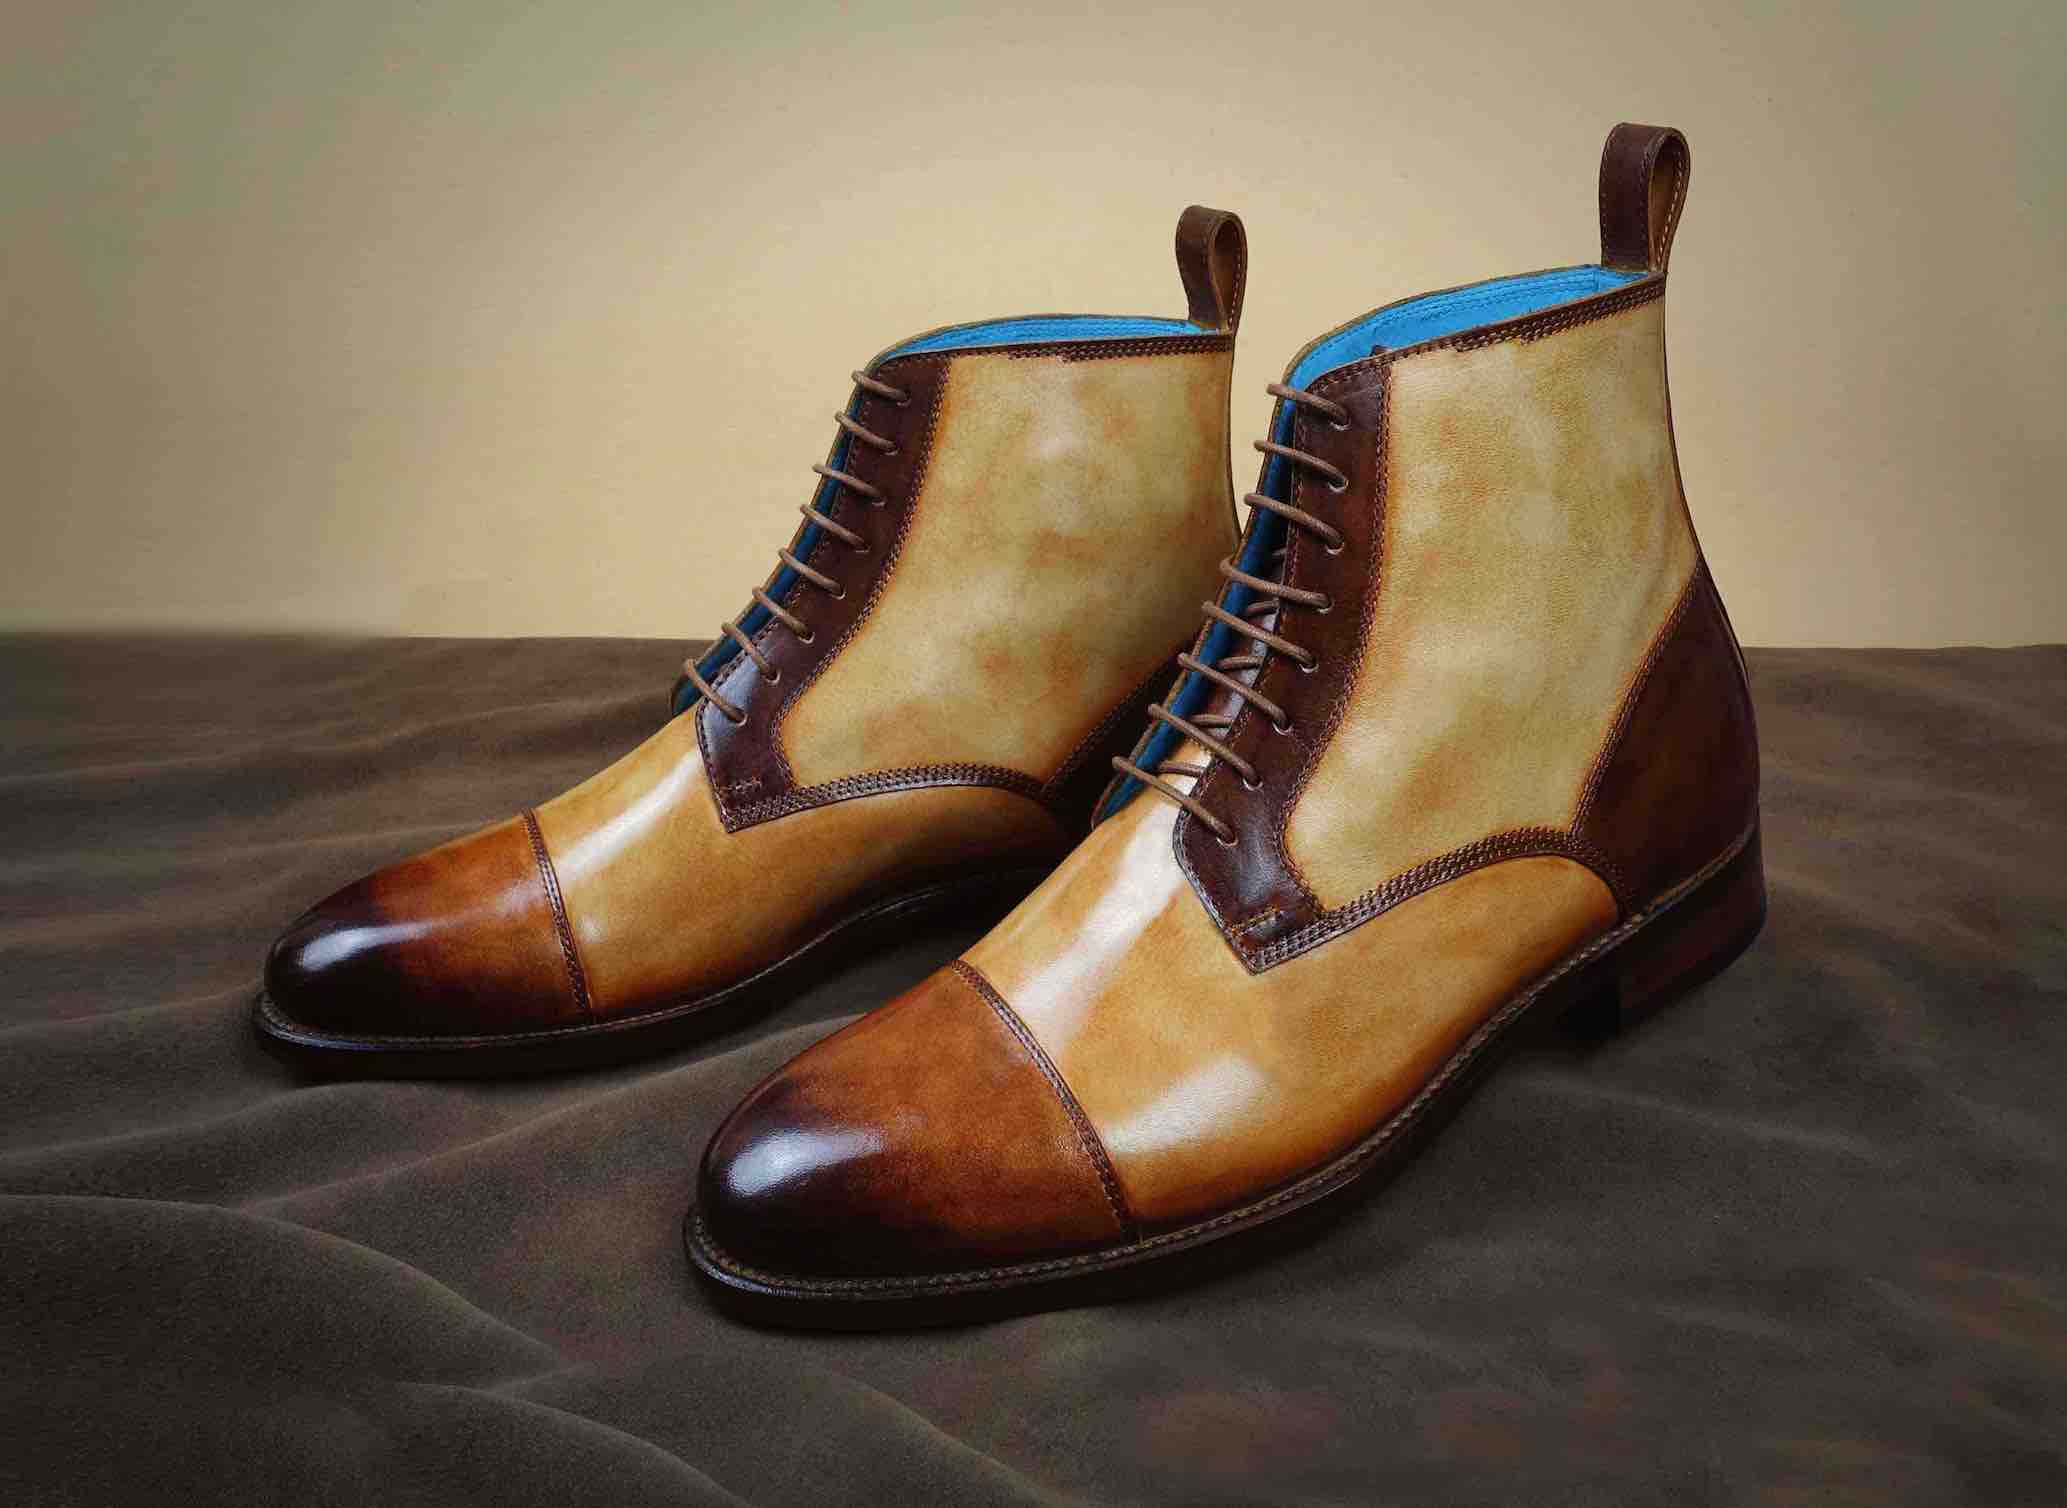 Derby toe cap boots with hand painted patina